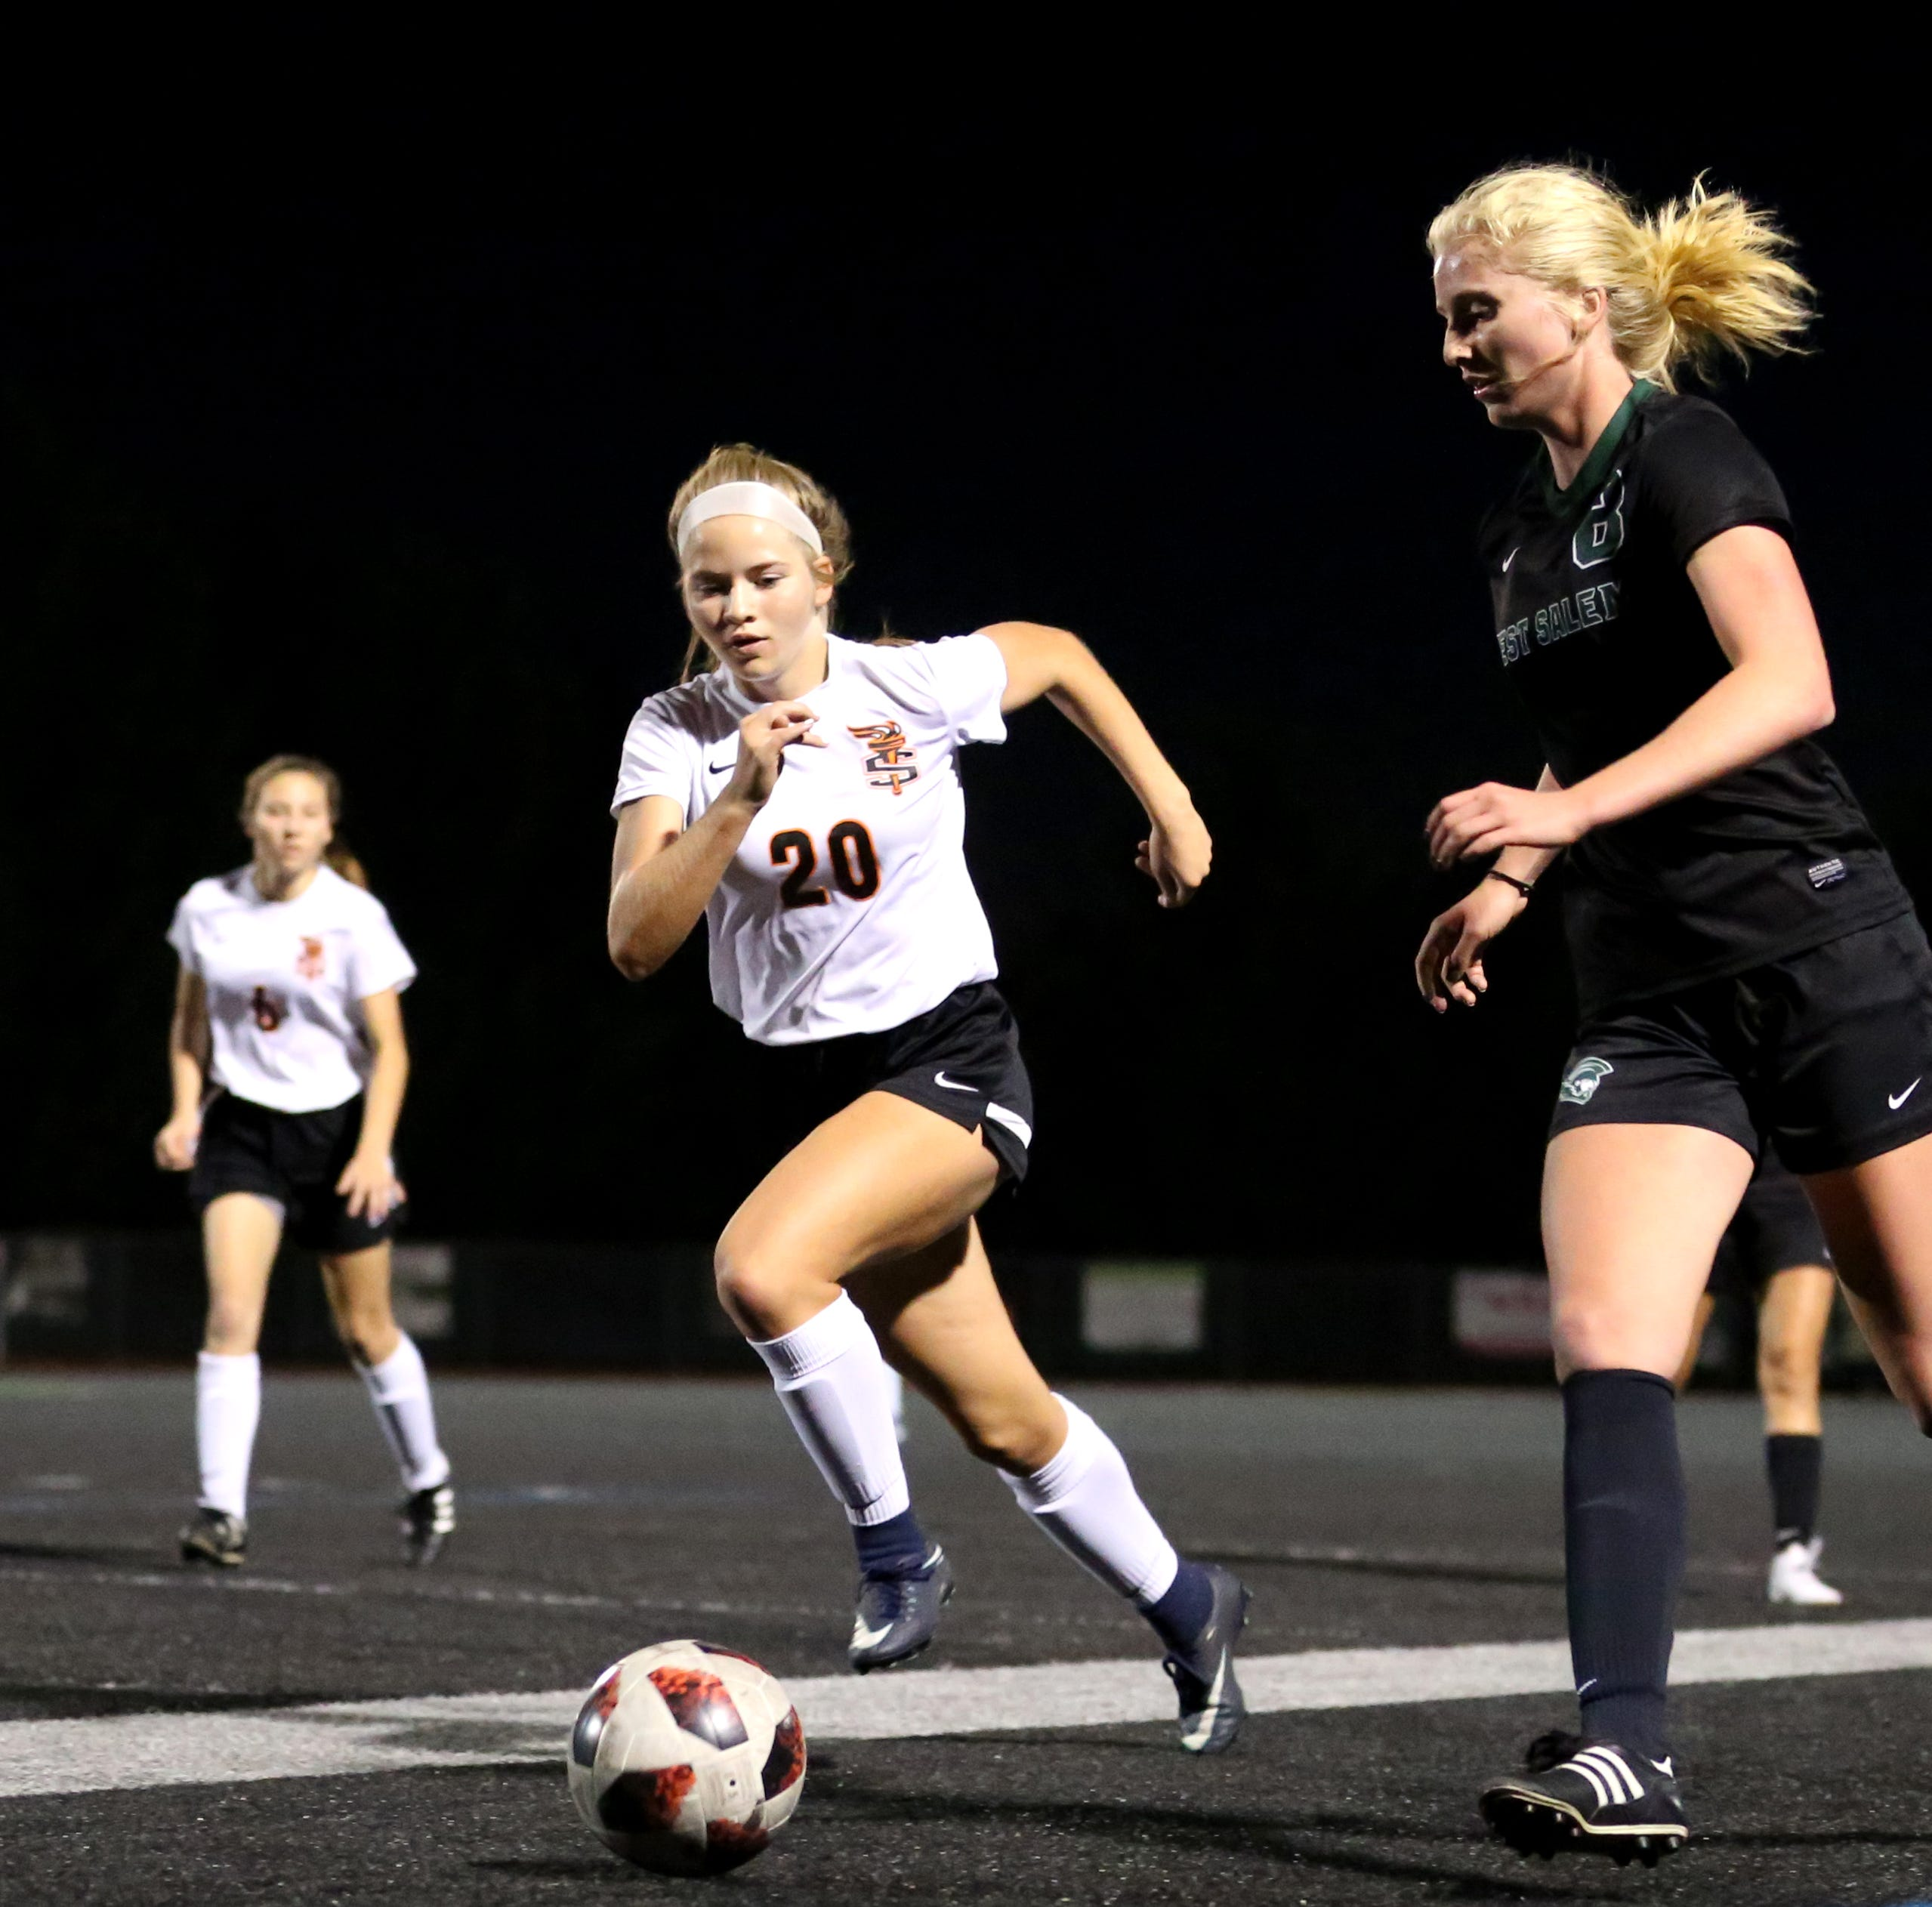 West Salem girls soccer plays Friday for the Mountain Valley Conference title